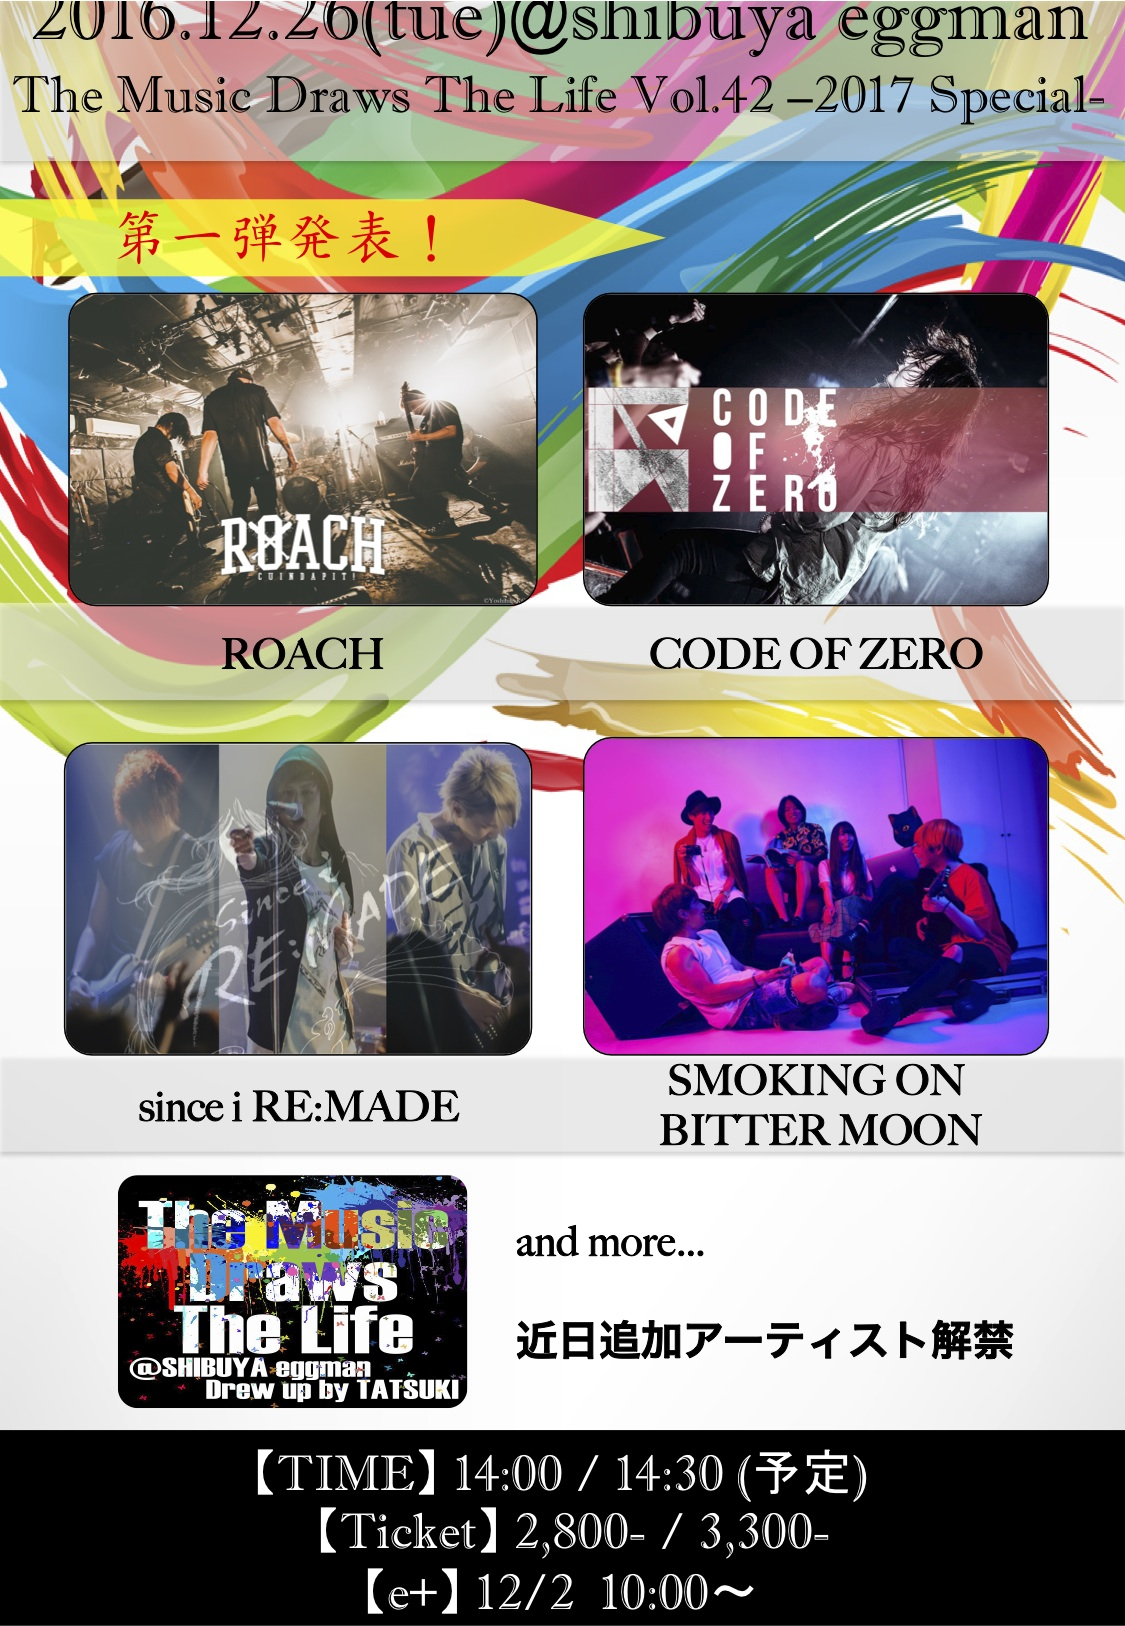 The Music Draws The Life Vol.42 -2017 Special-